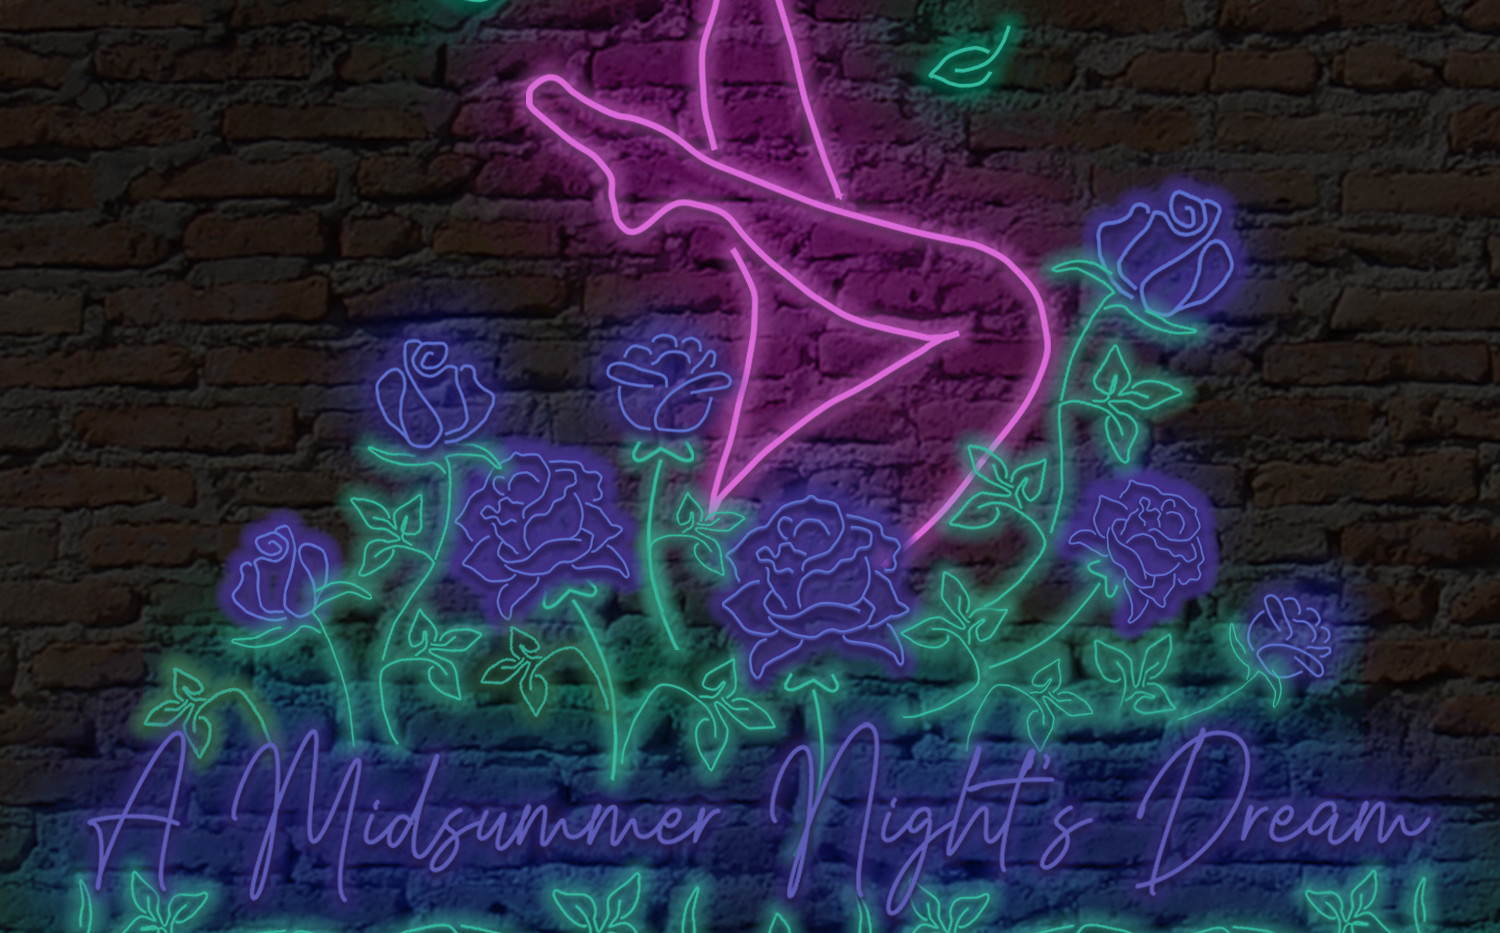 MASTERPIECE IN NEON.jpg